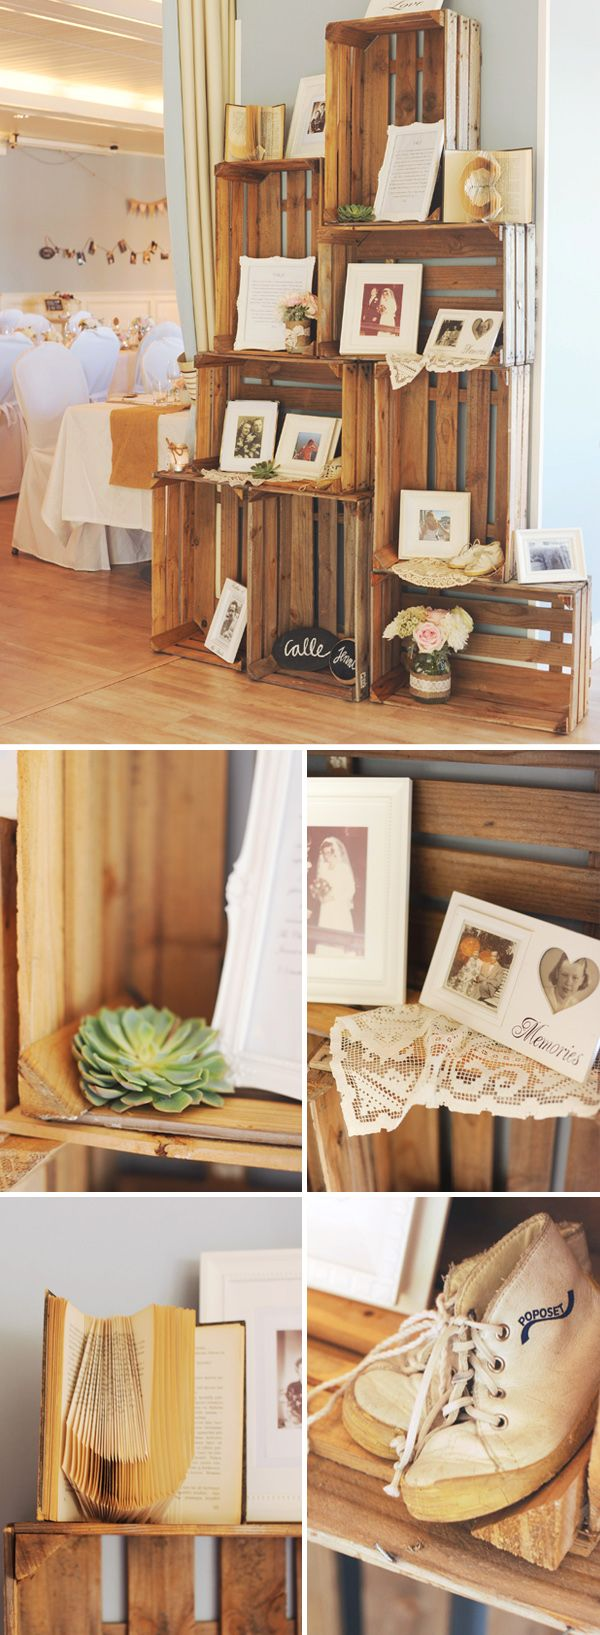 Hey Look: A ROMANTIC VINTAGE WEDDING: JENNI & CALLE